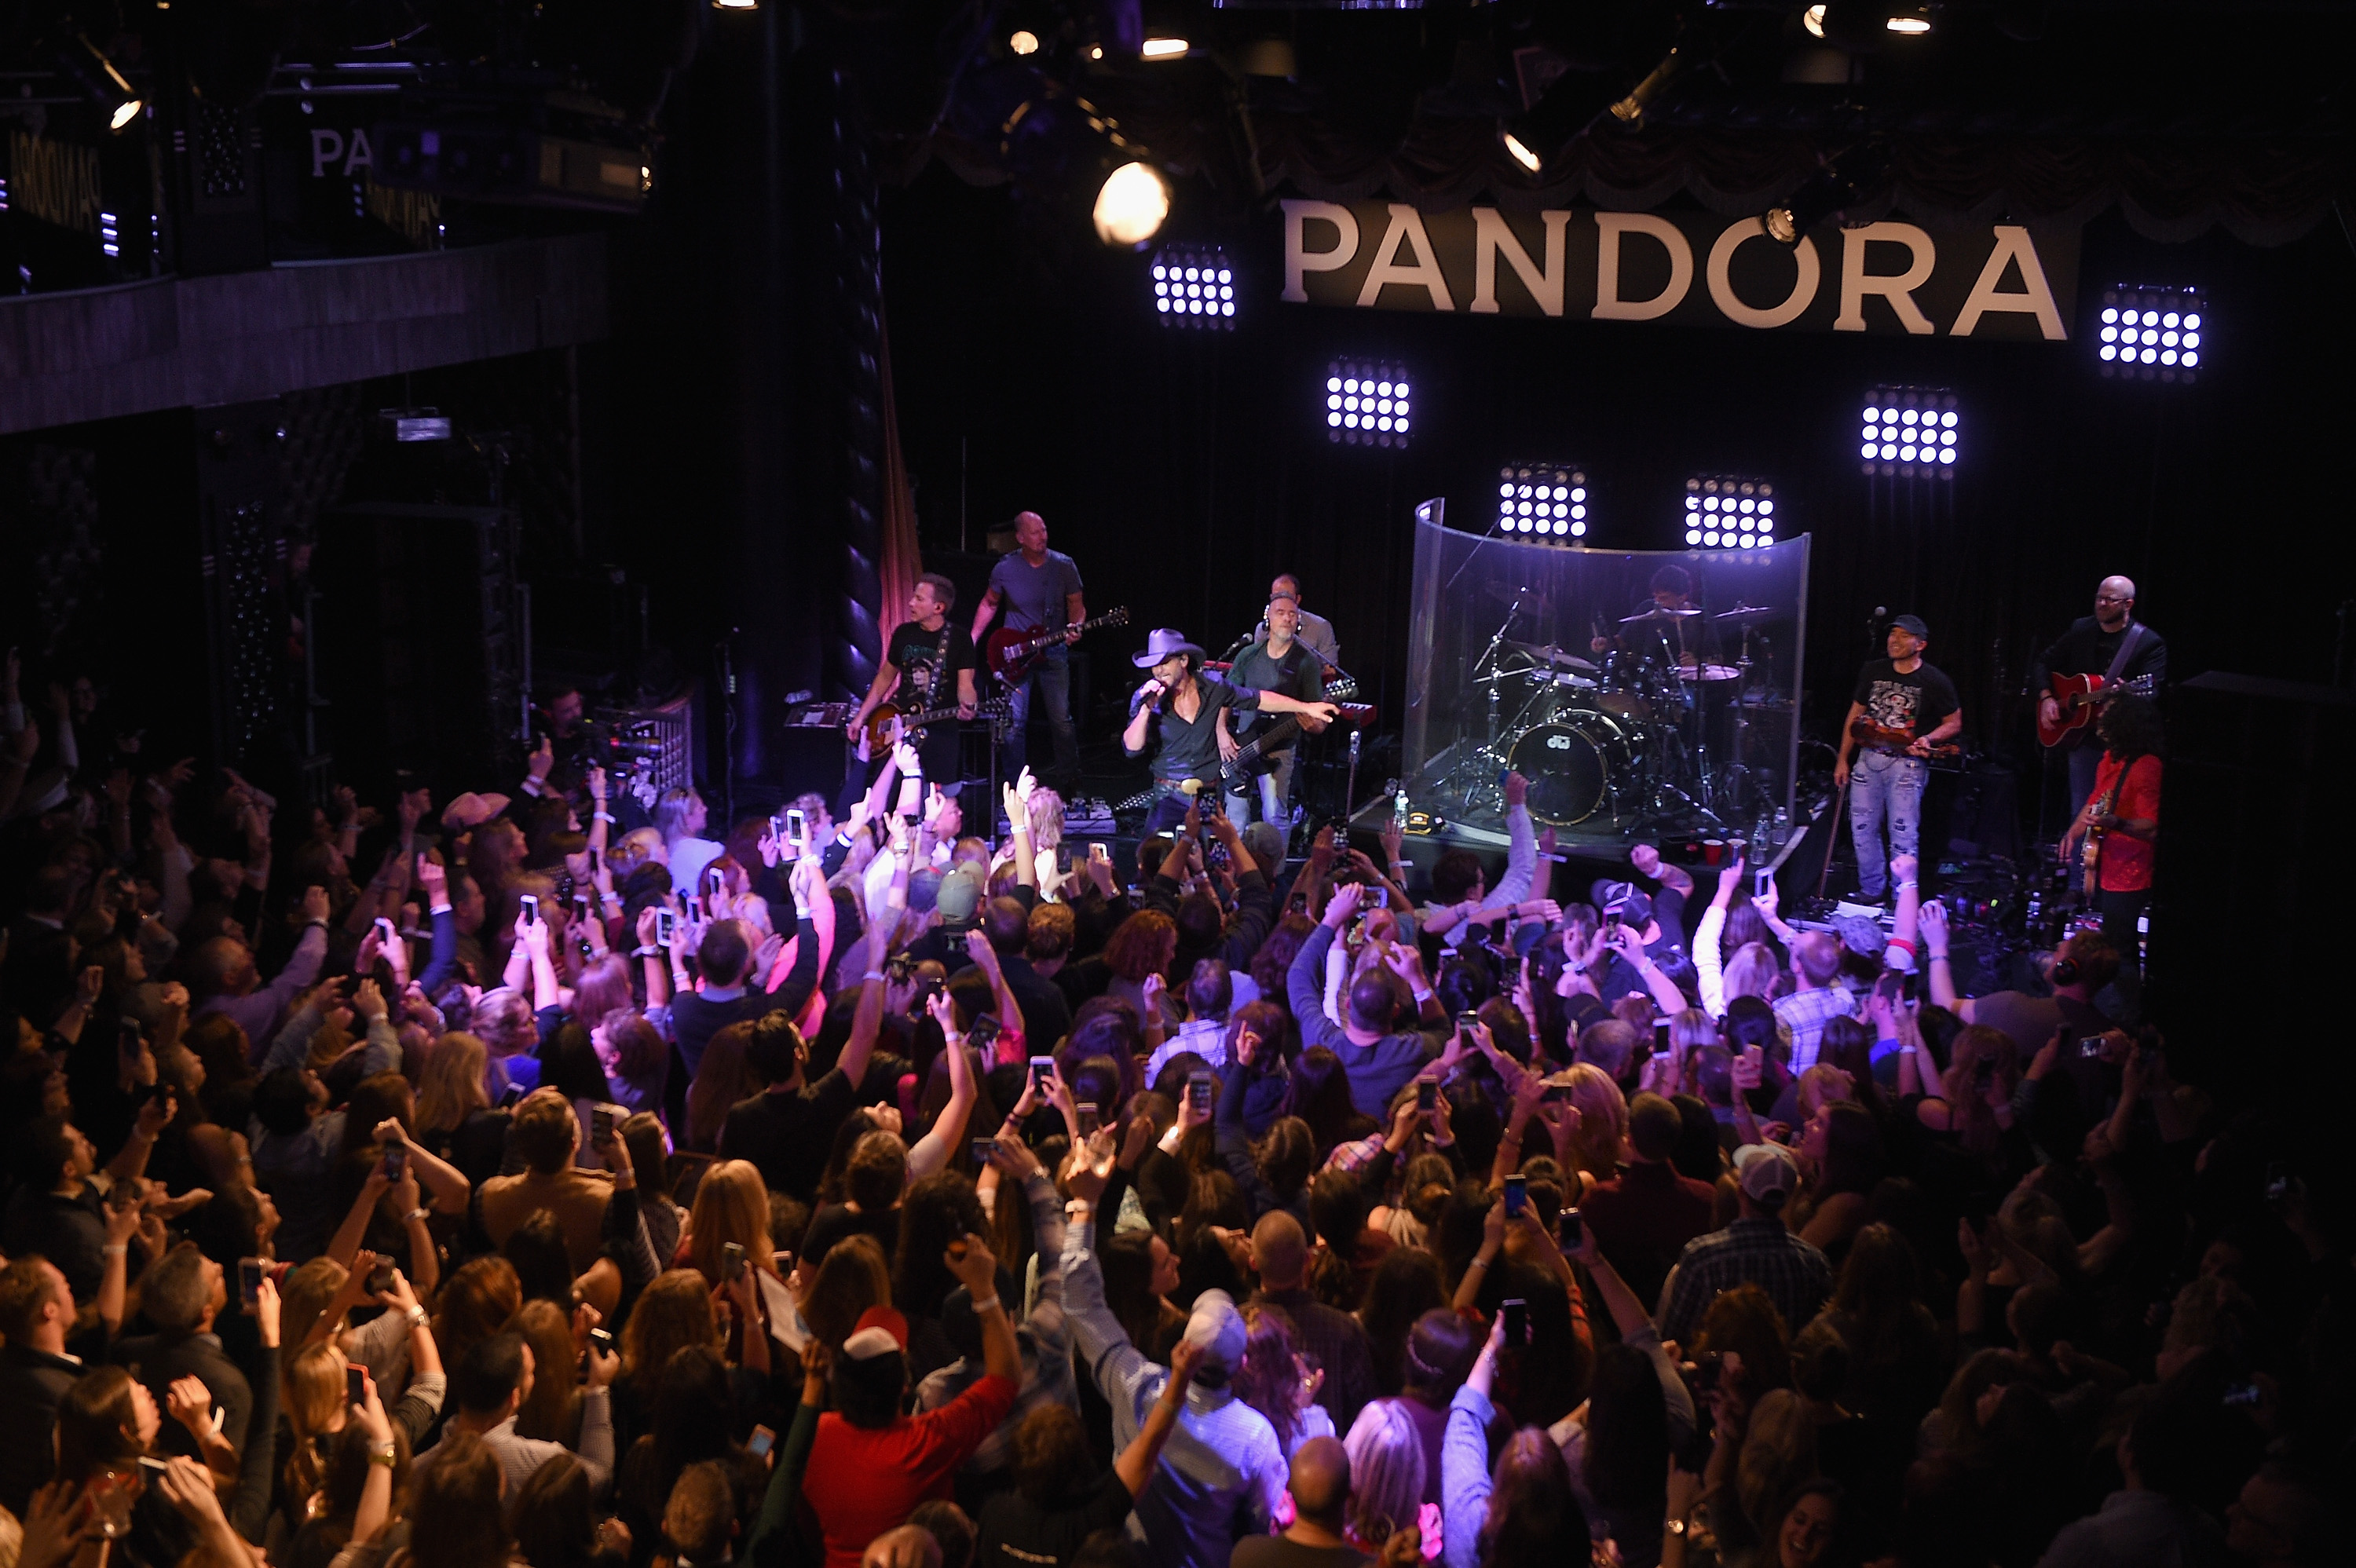 Rdio is shutting down and Pandora is buying up the scraps